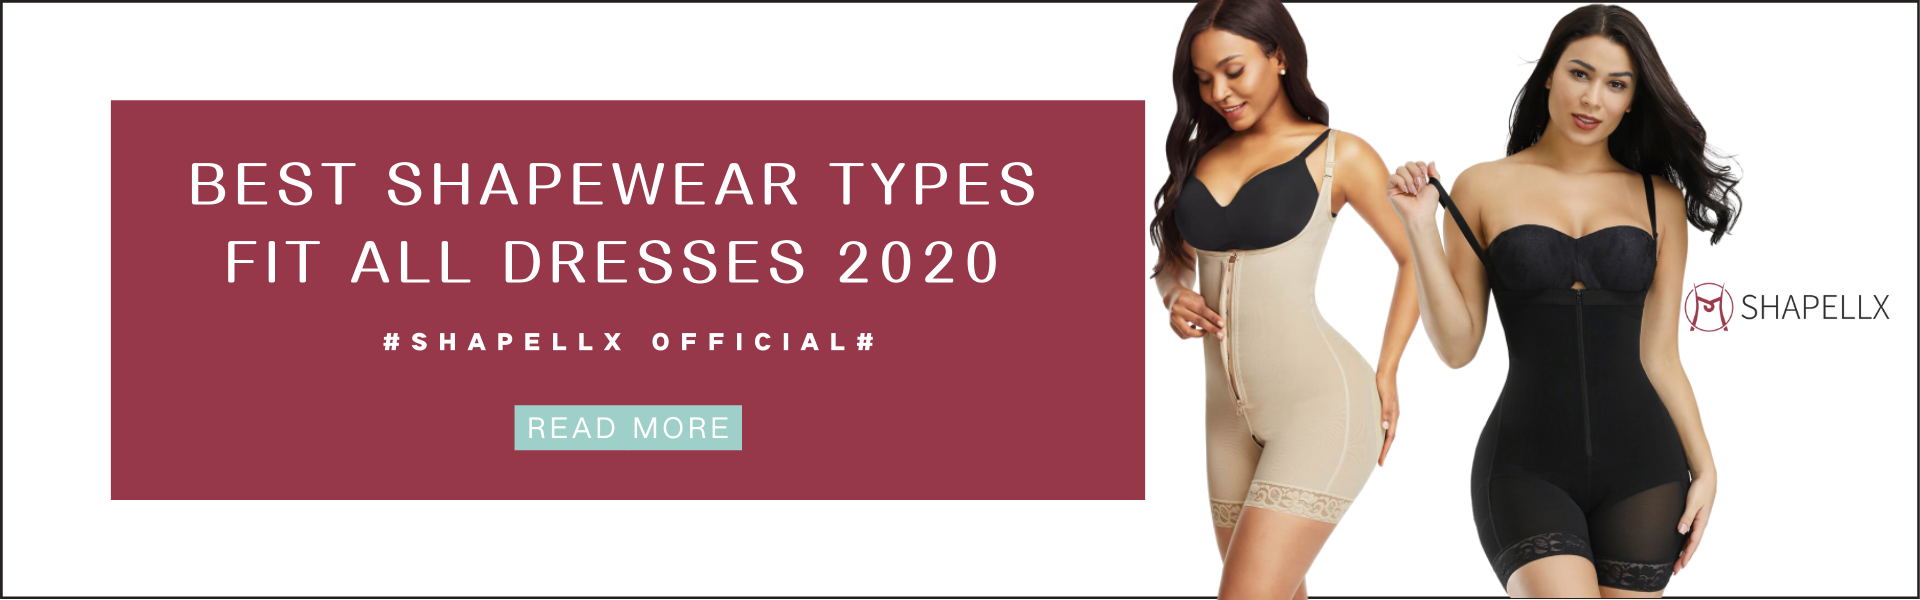 Best Shapewear Fits All Types of Dresses 2020